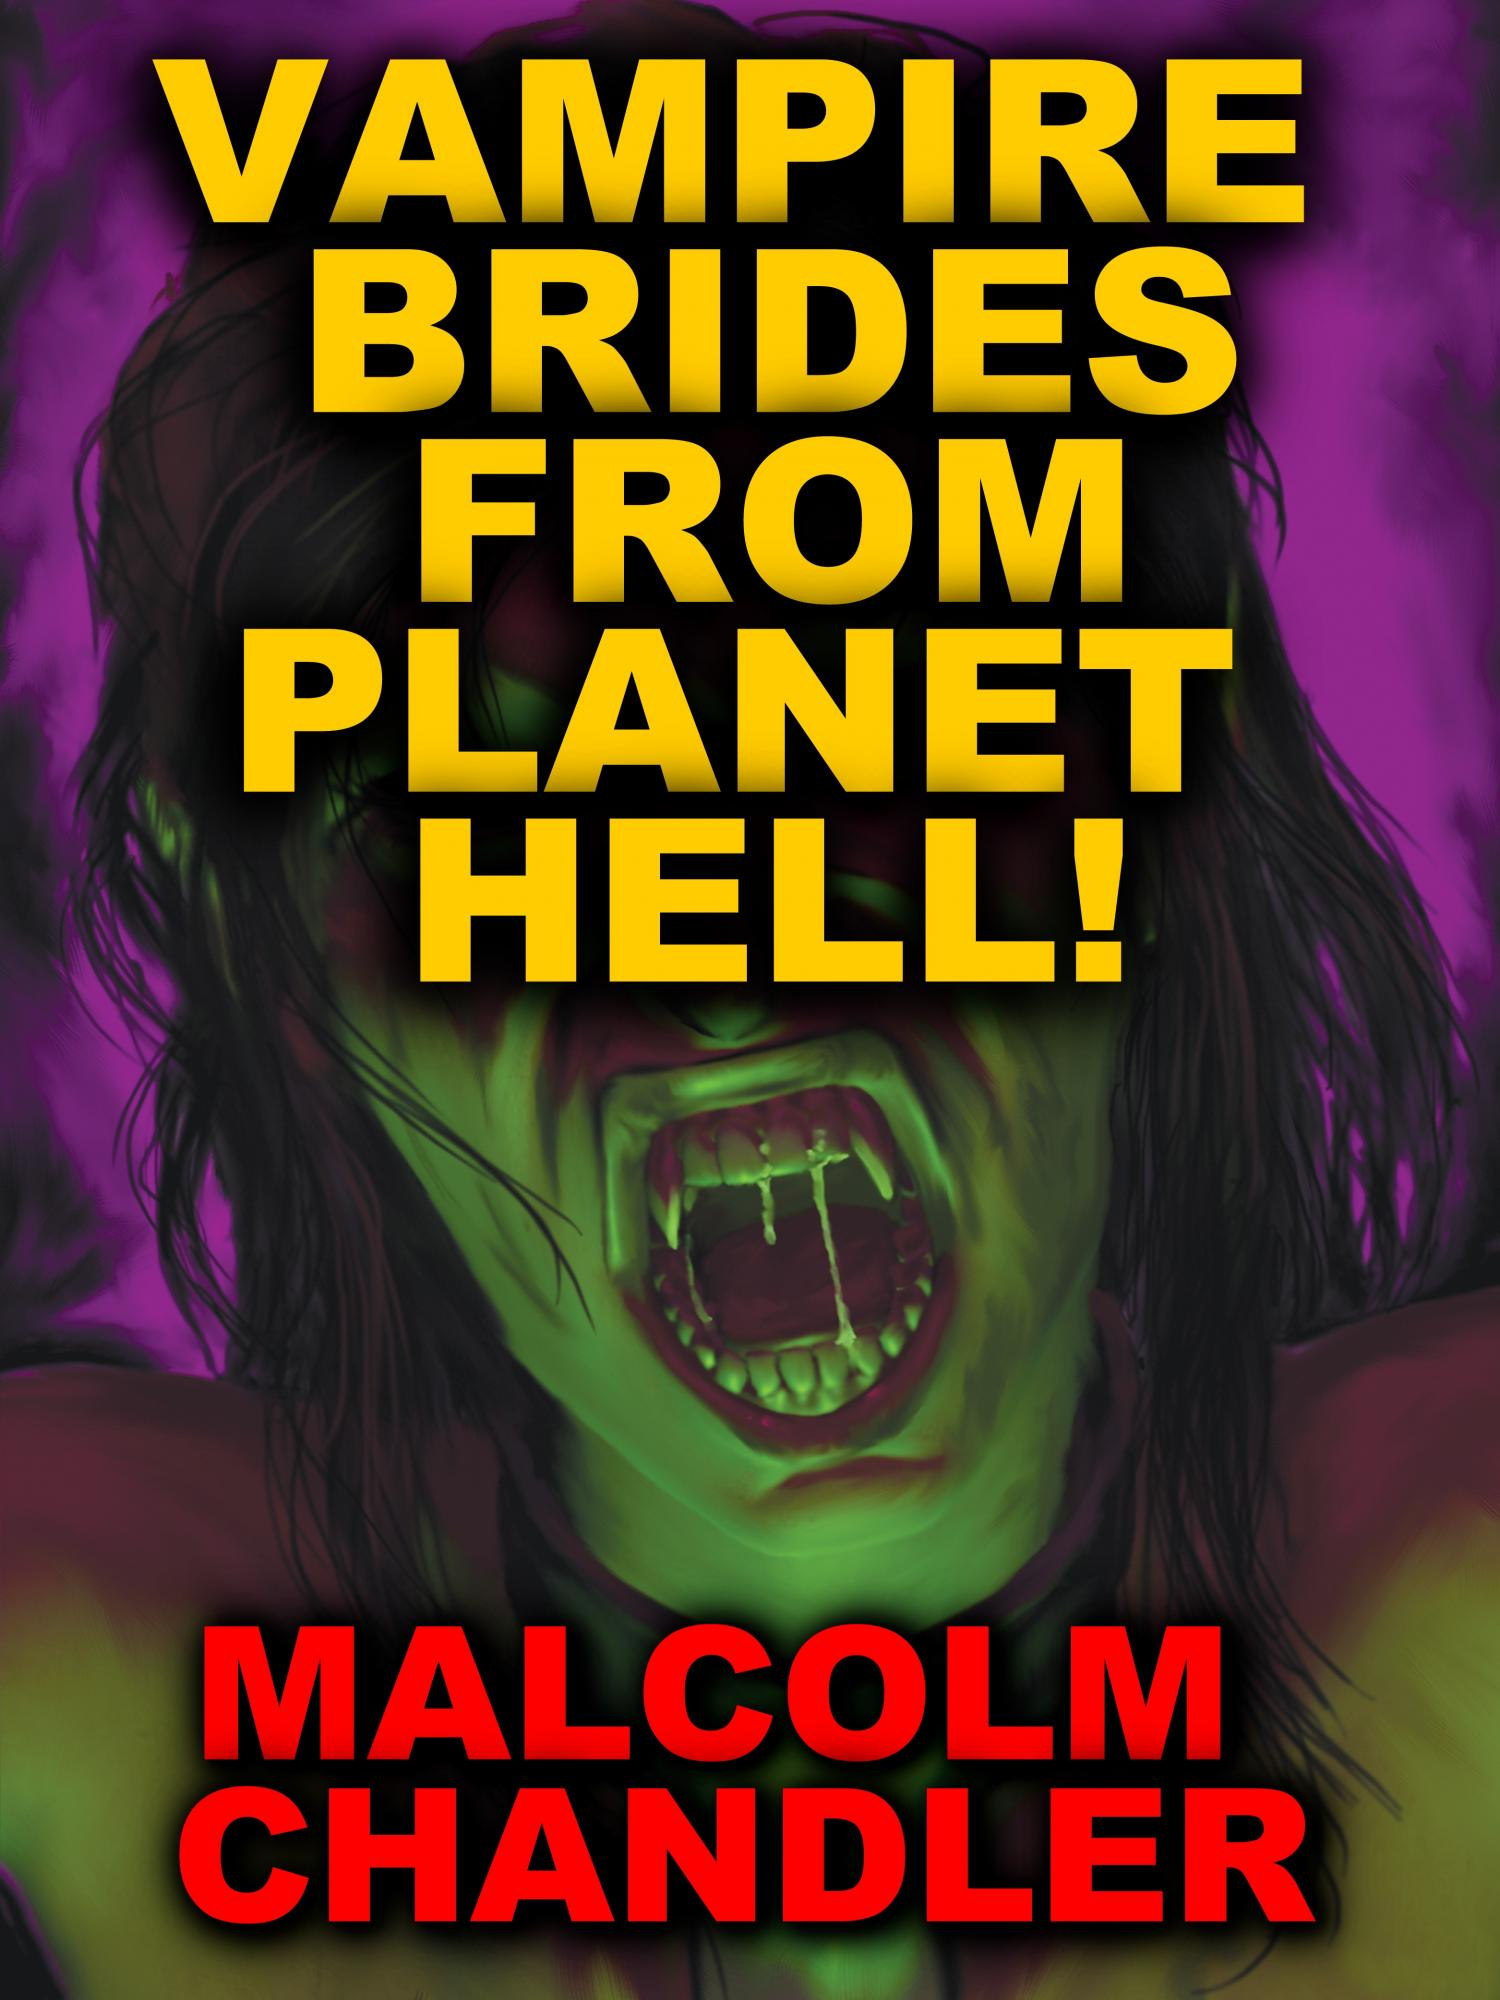 Vampire Brides from Planet Hell